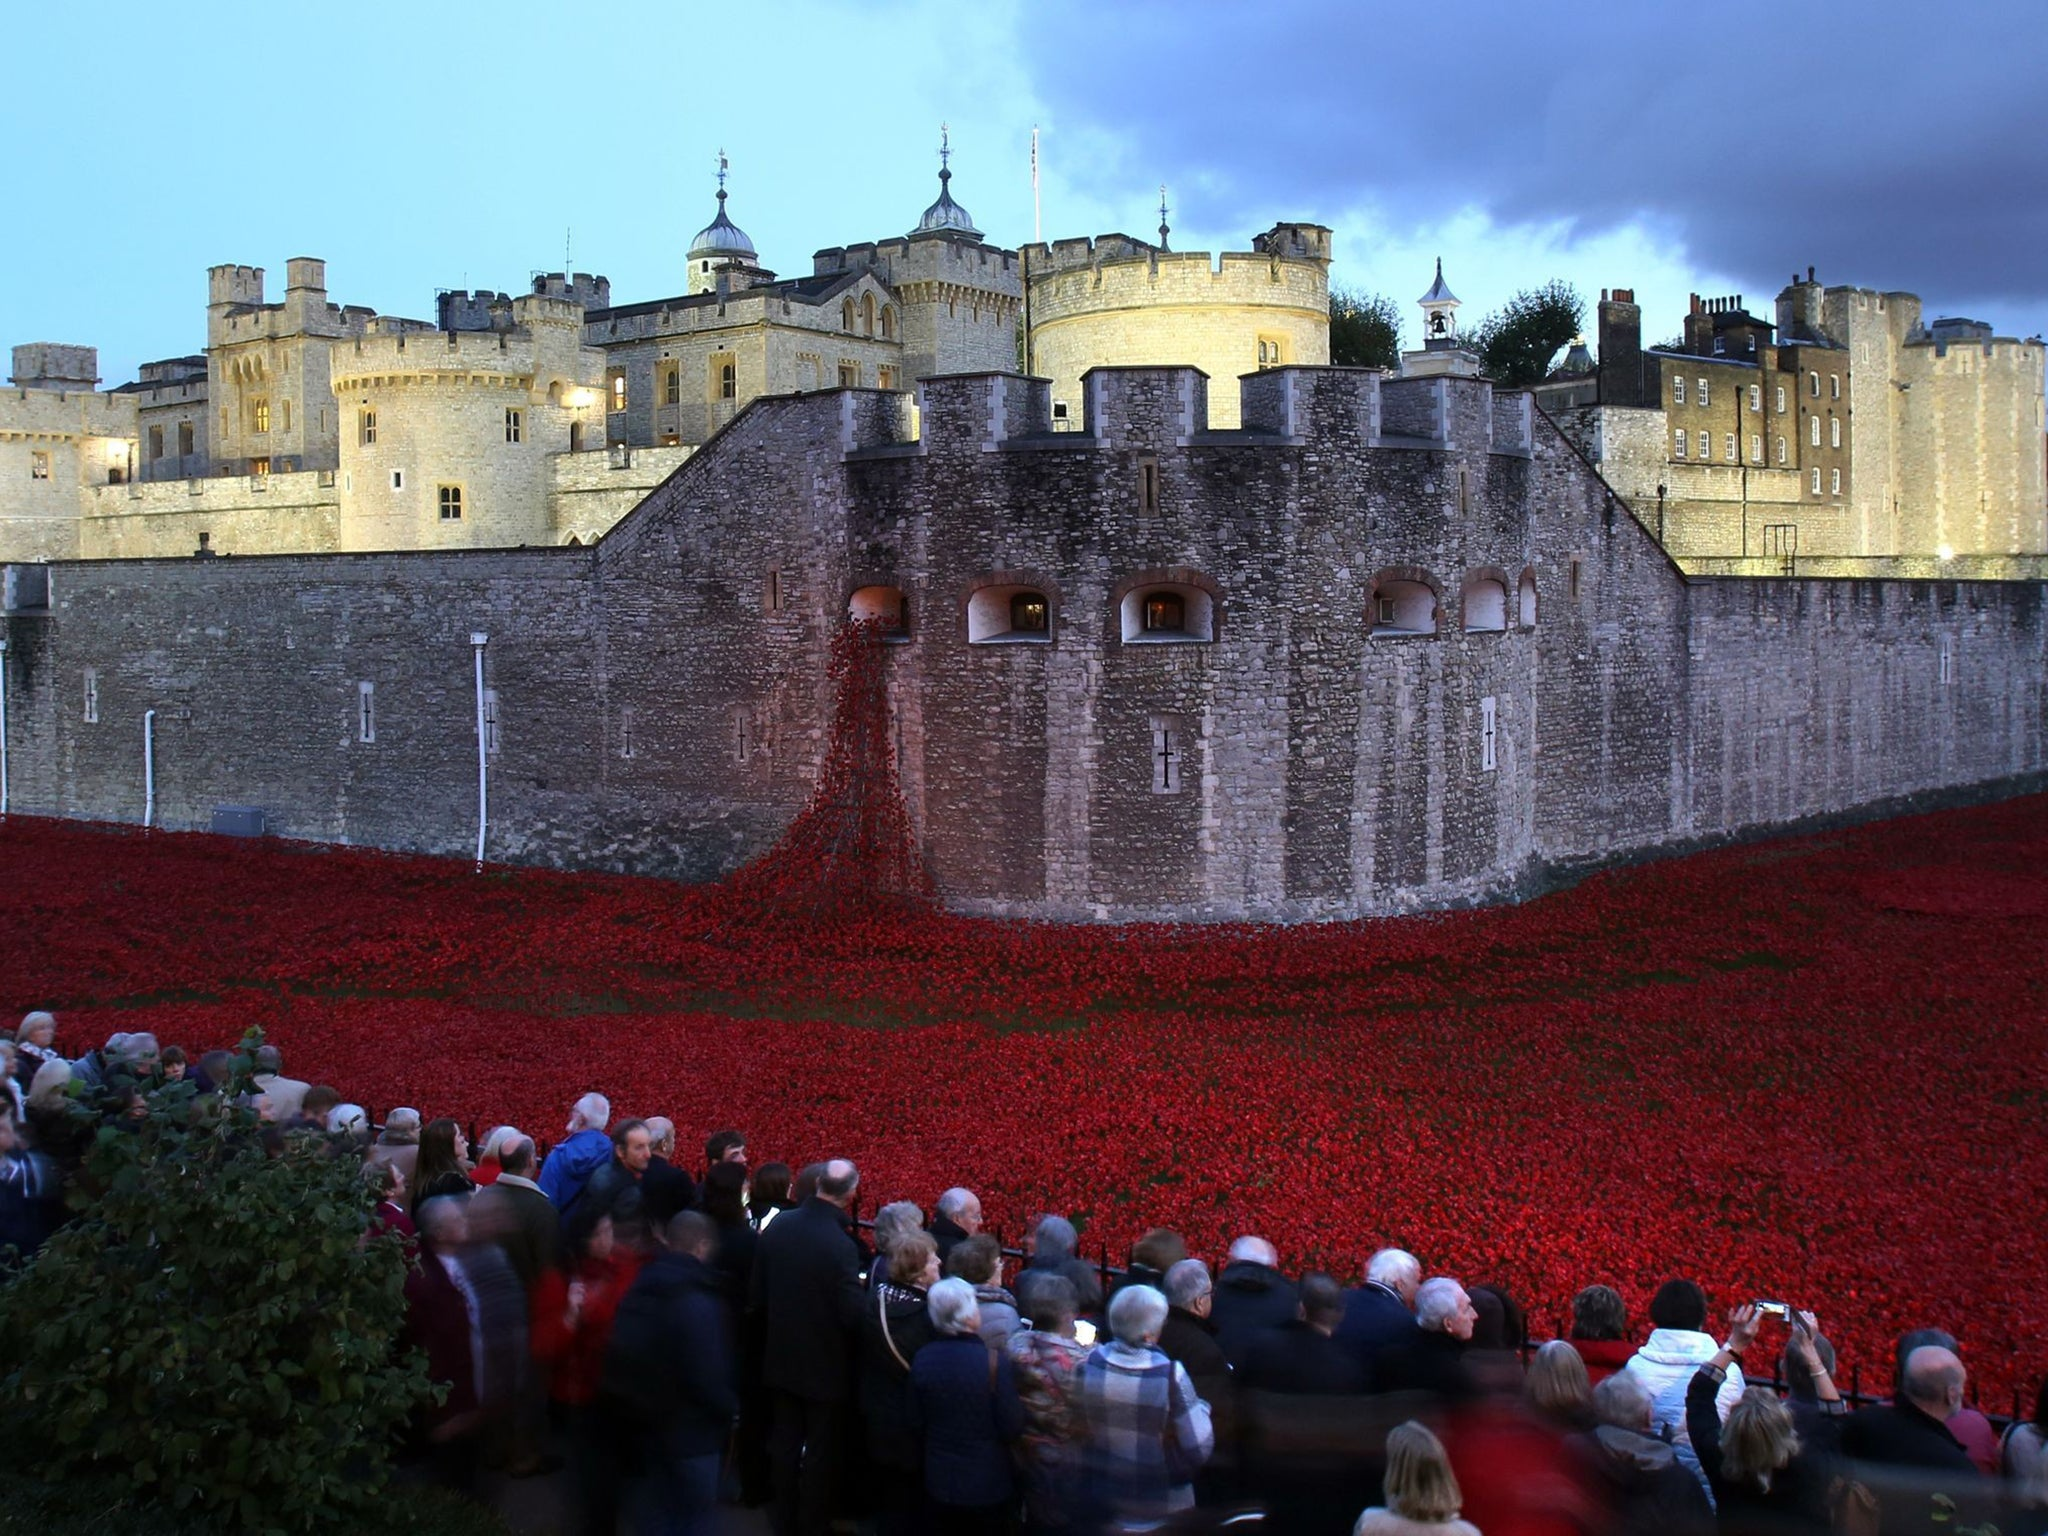 Remembrance Day Images Tower of London Armistice Day Tower of London